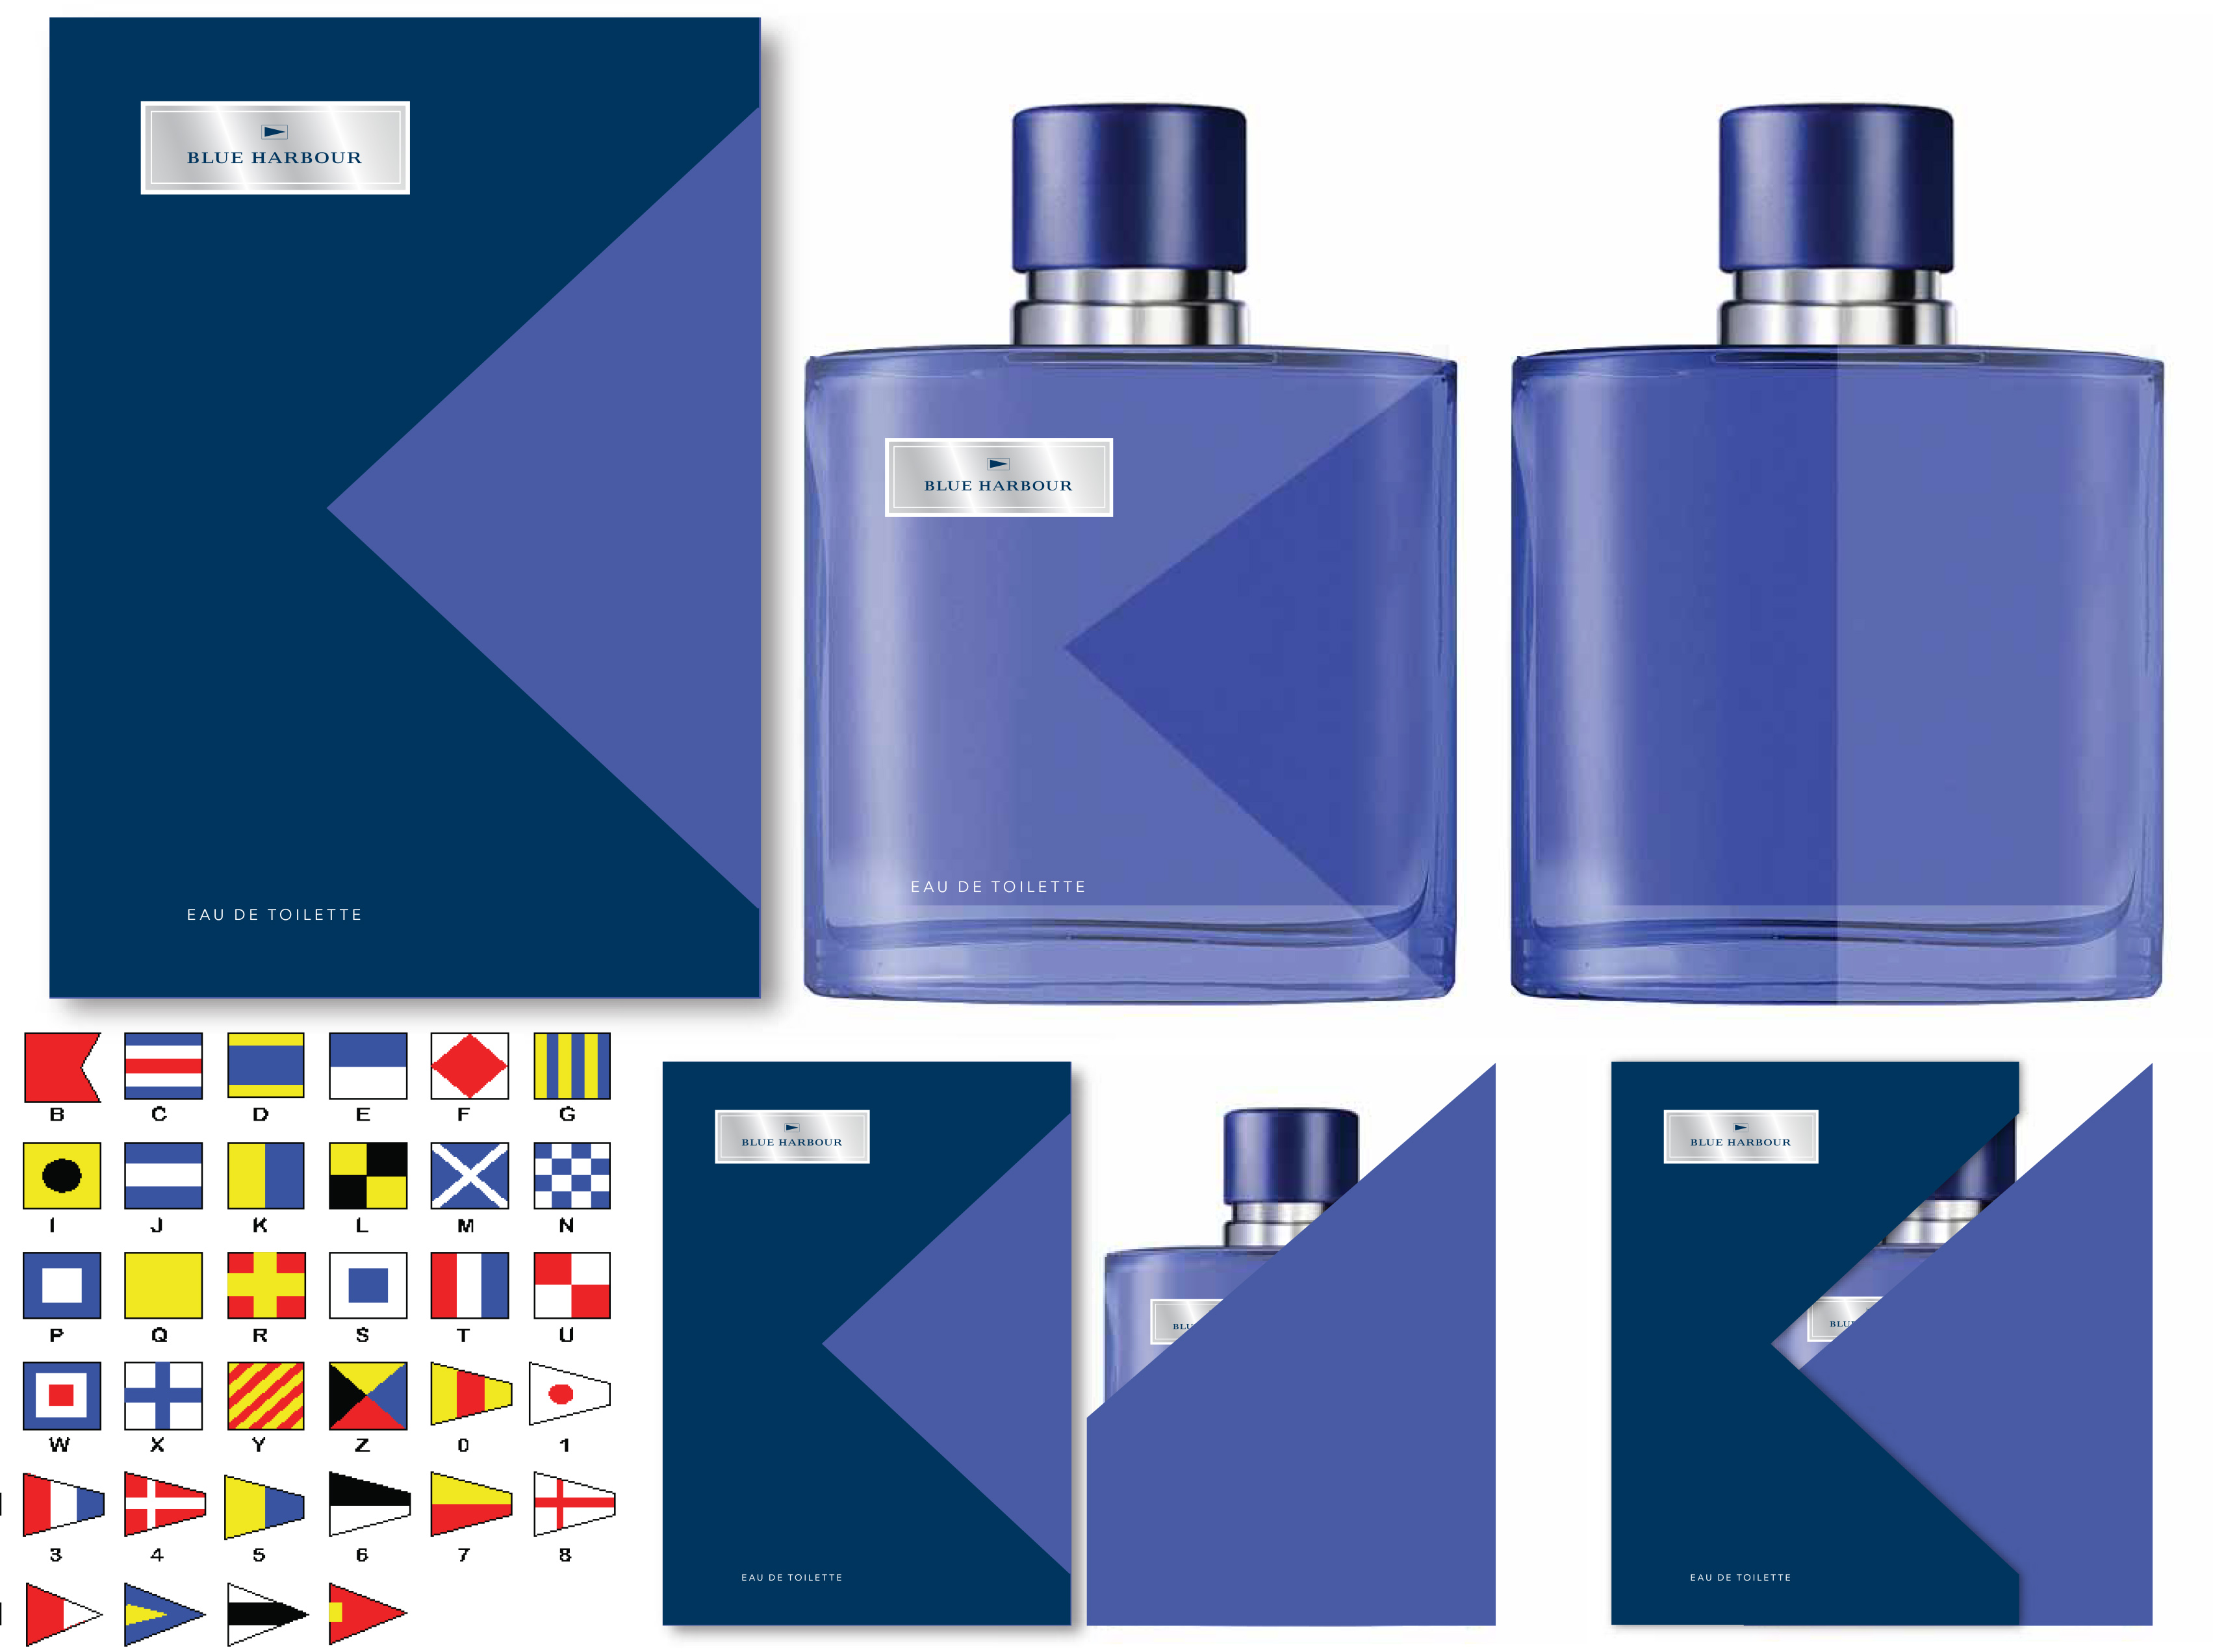 BLUE HARBOUR EAU DE TOILETTE